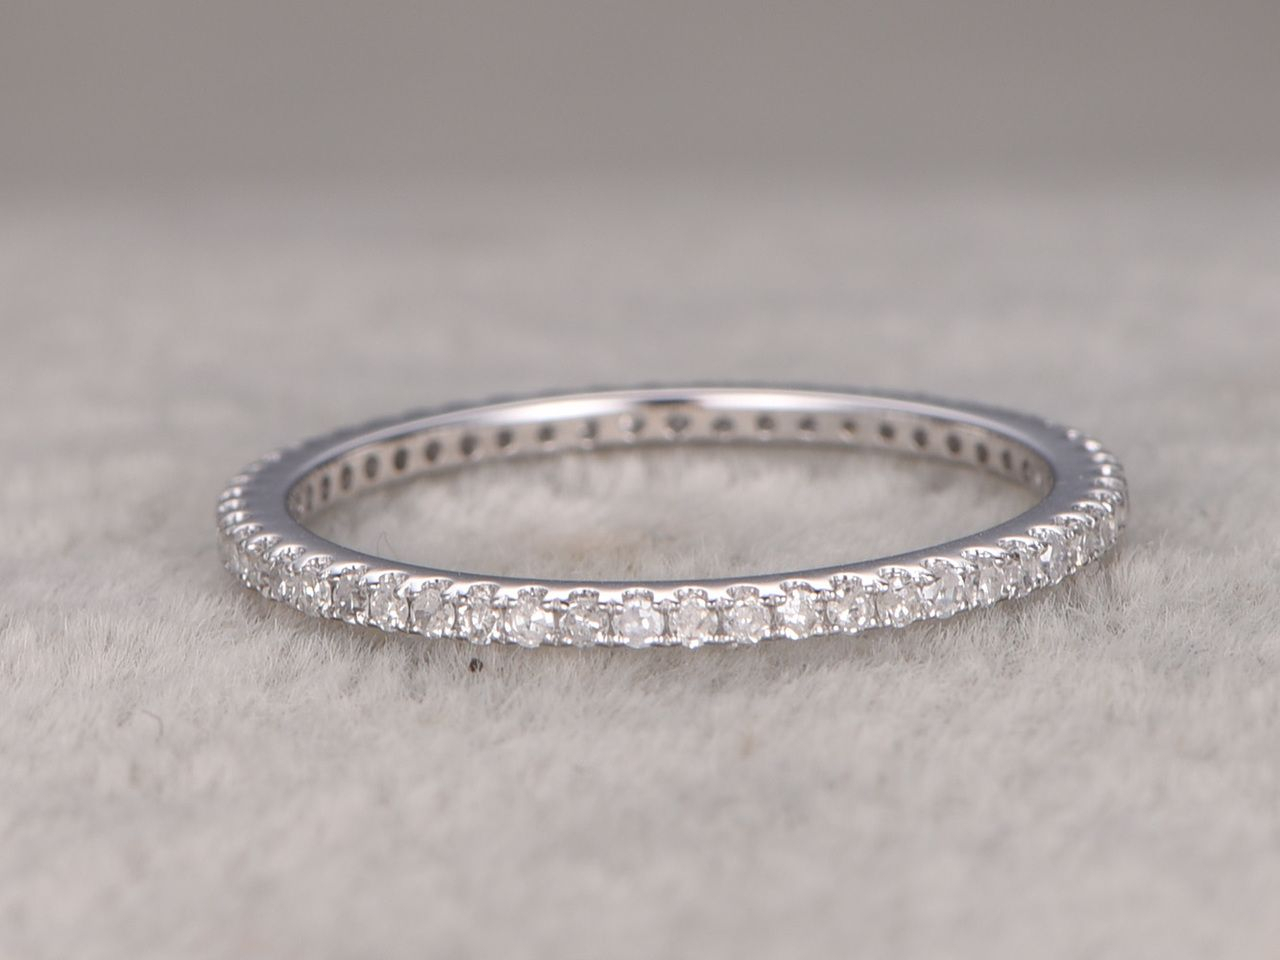 White Gold Diamond Wedding Rings For Her Thin Pave Full Regarding Most Recent Full Micropavé Diamond Wedding Bands (View 5 of 25)